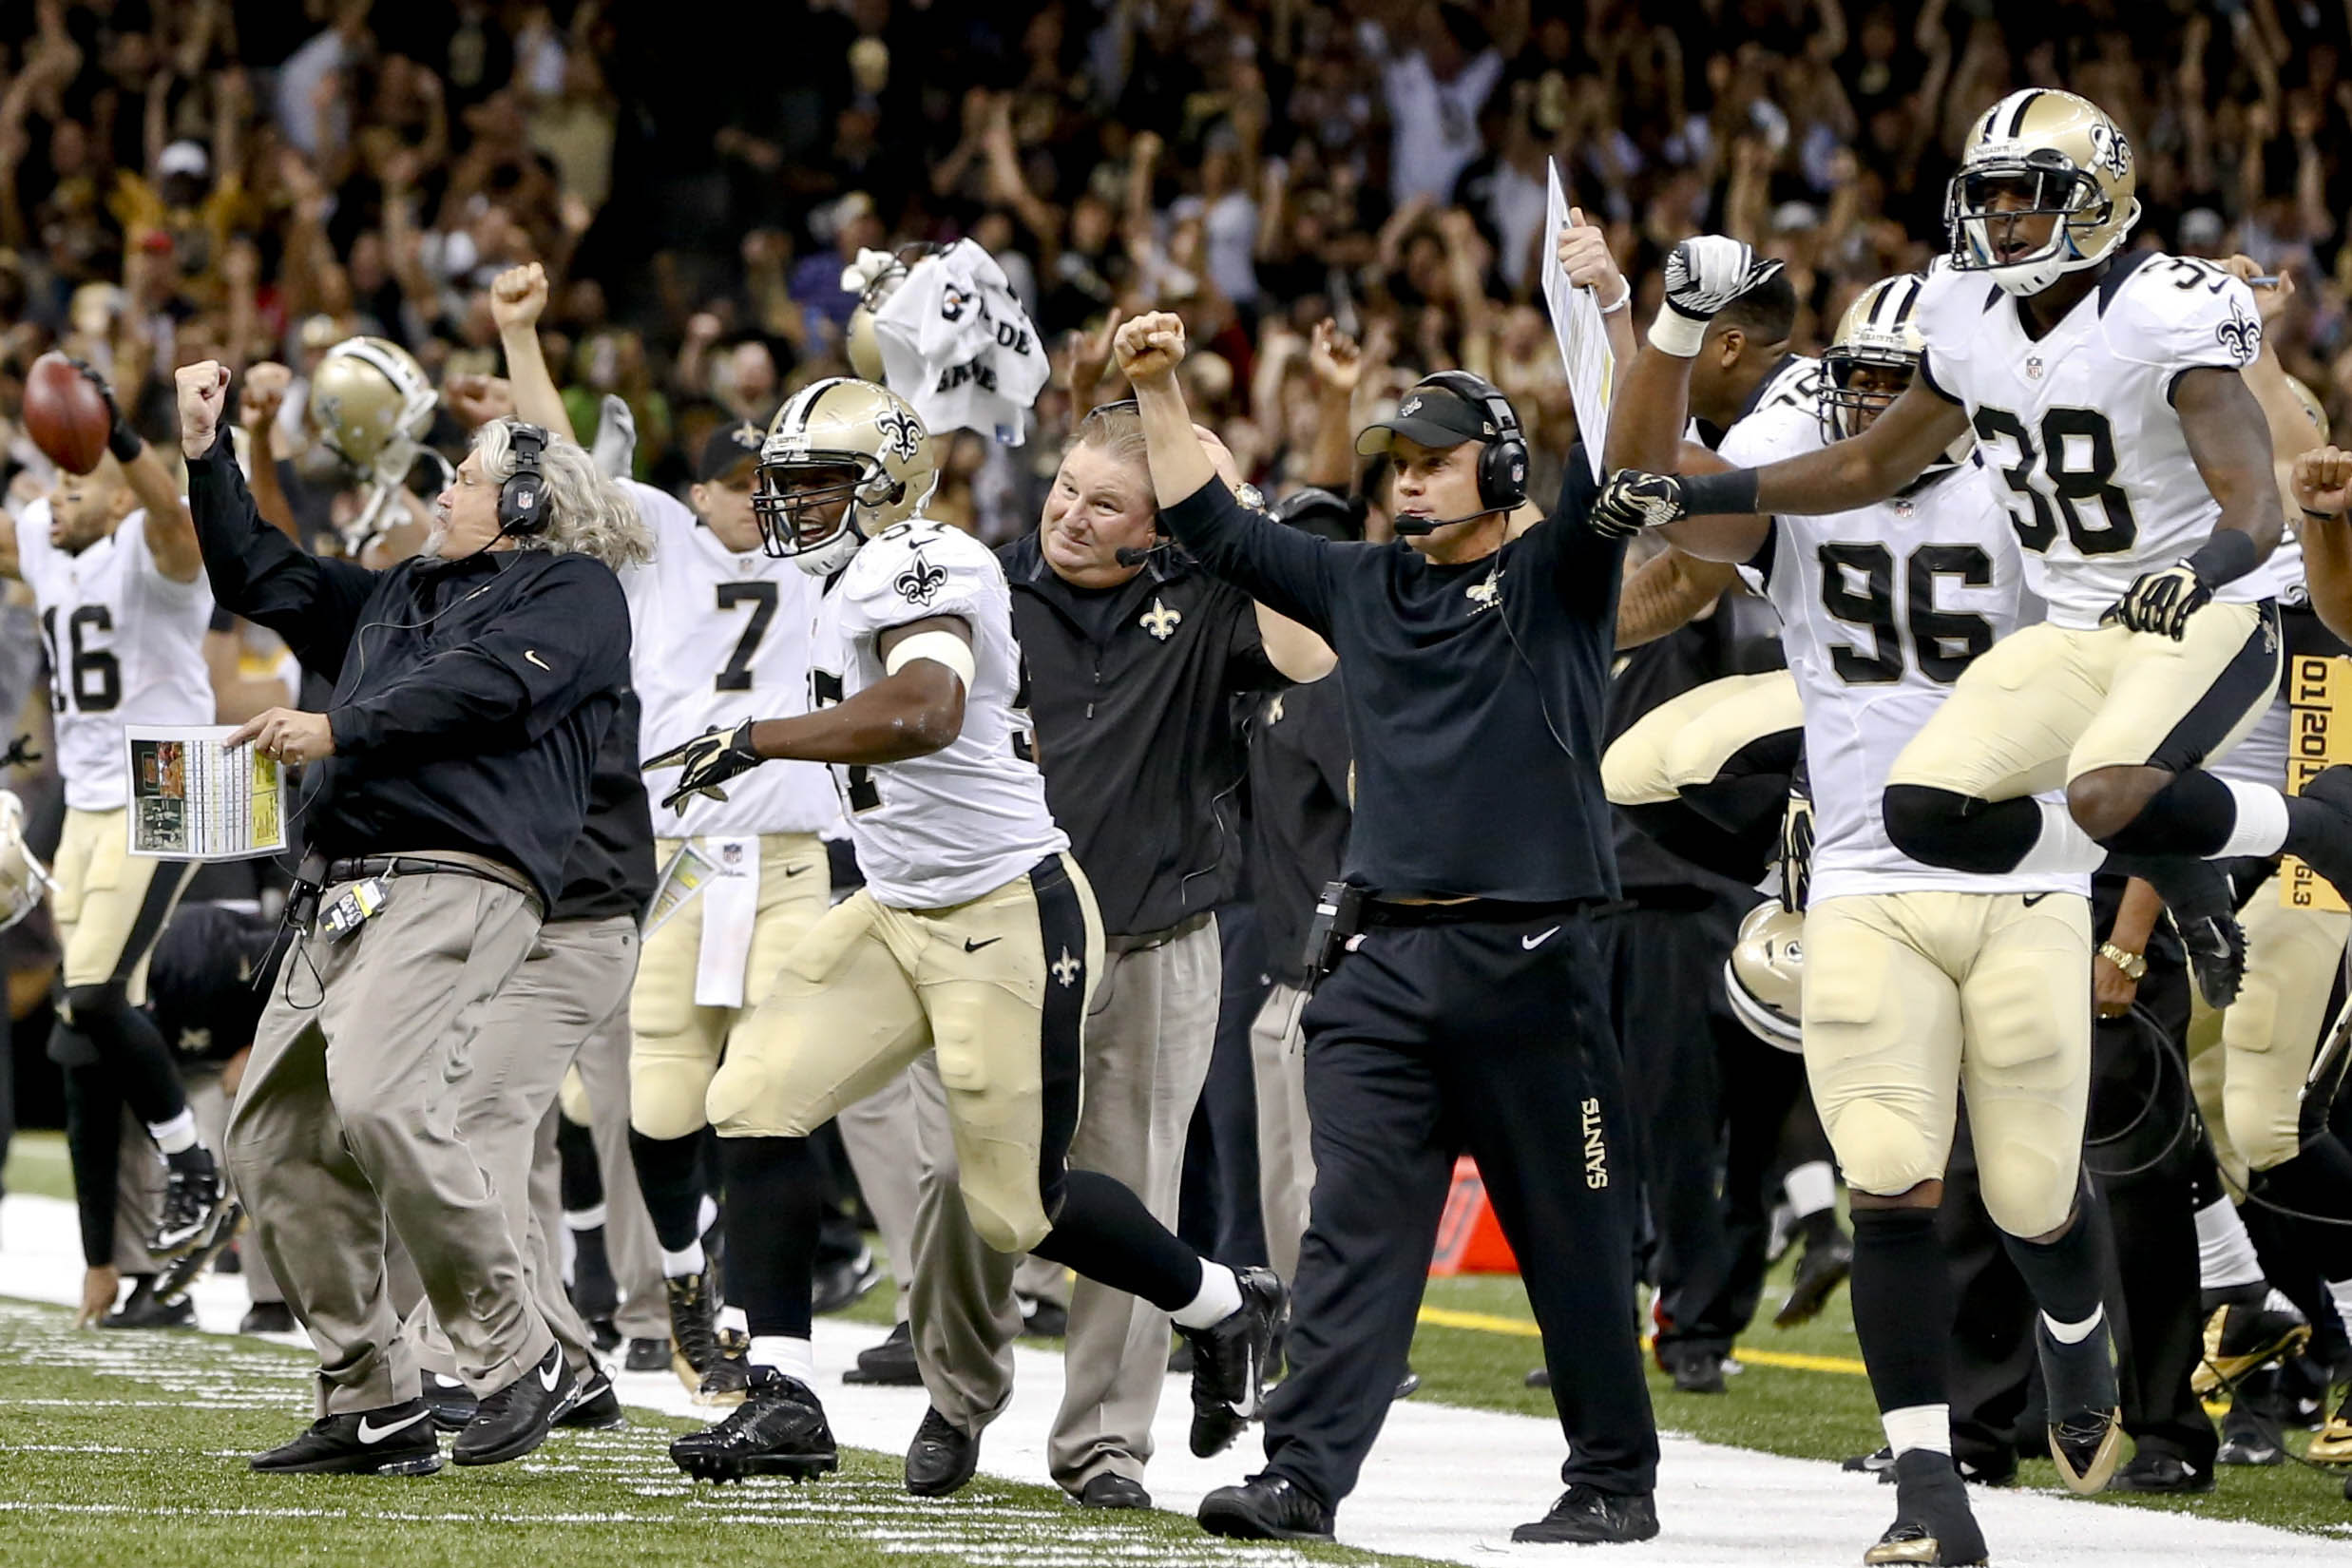 The Saints were happy to start the season 1-0 after beating the rival Falcons. (USA TODAY Sports)